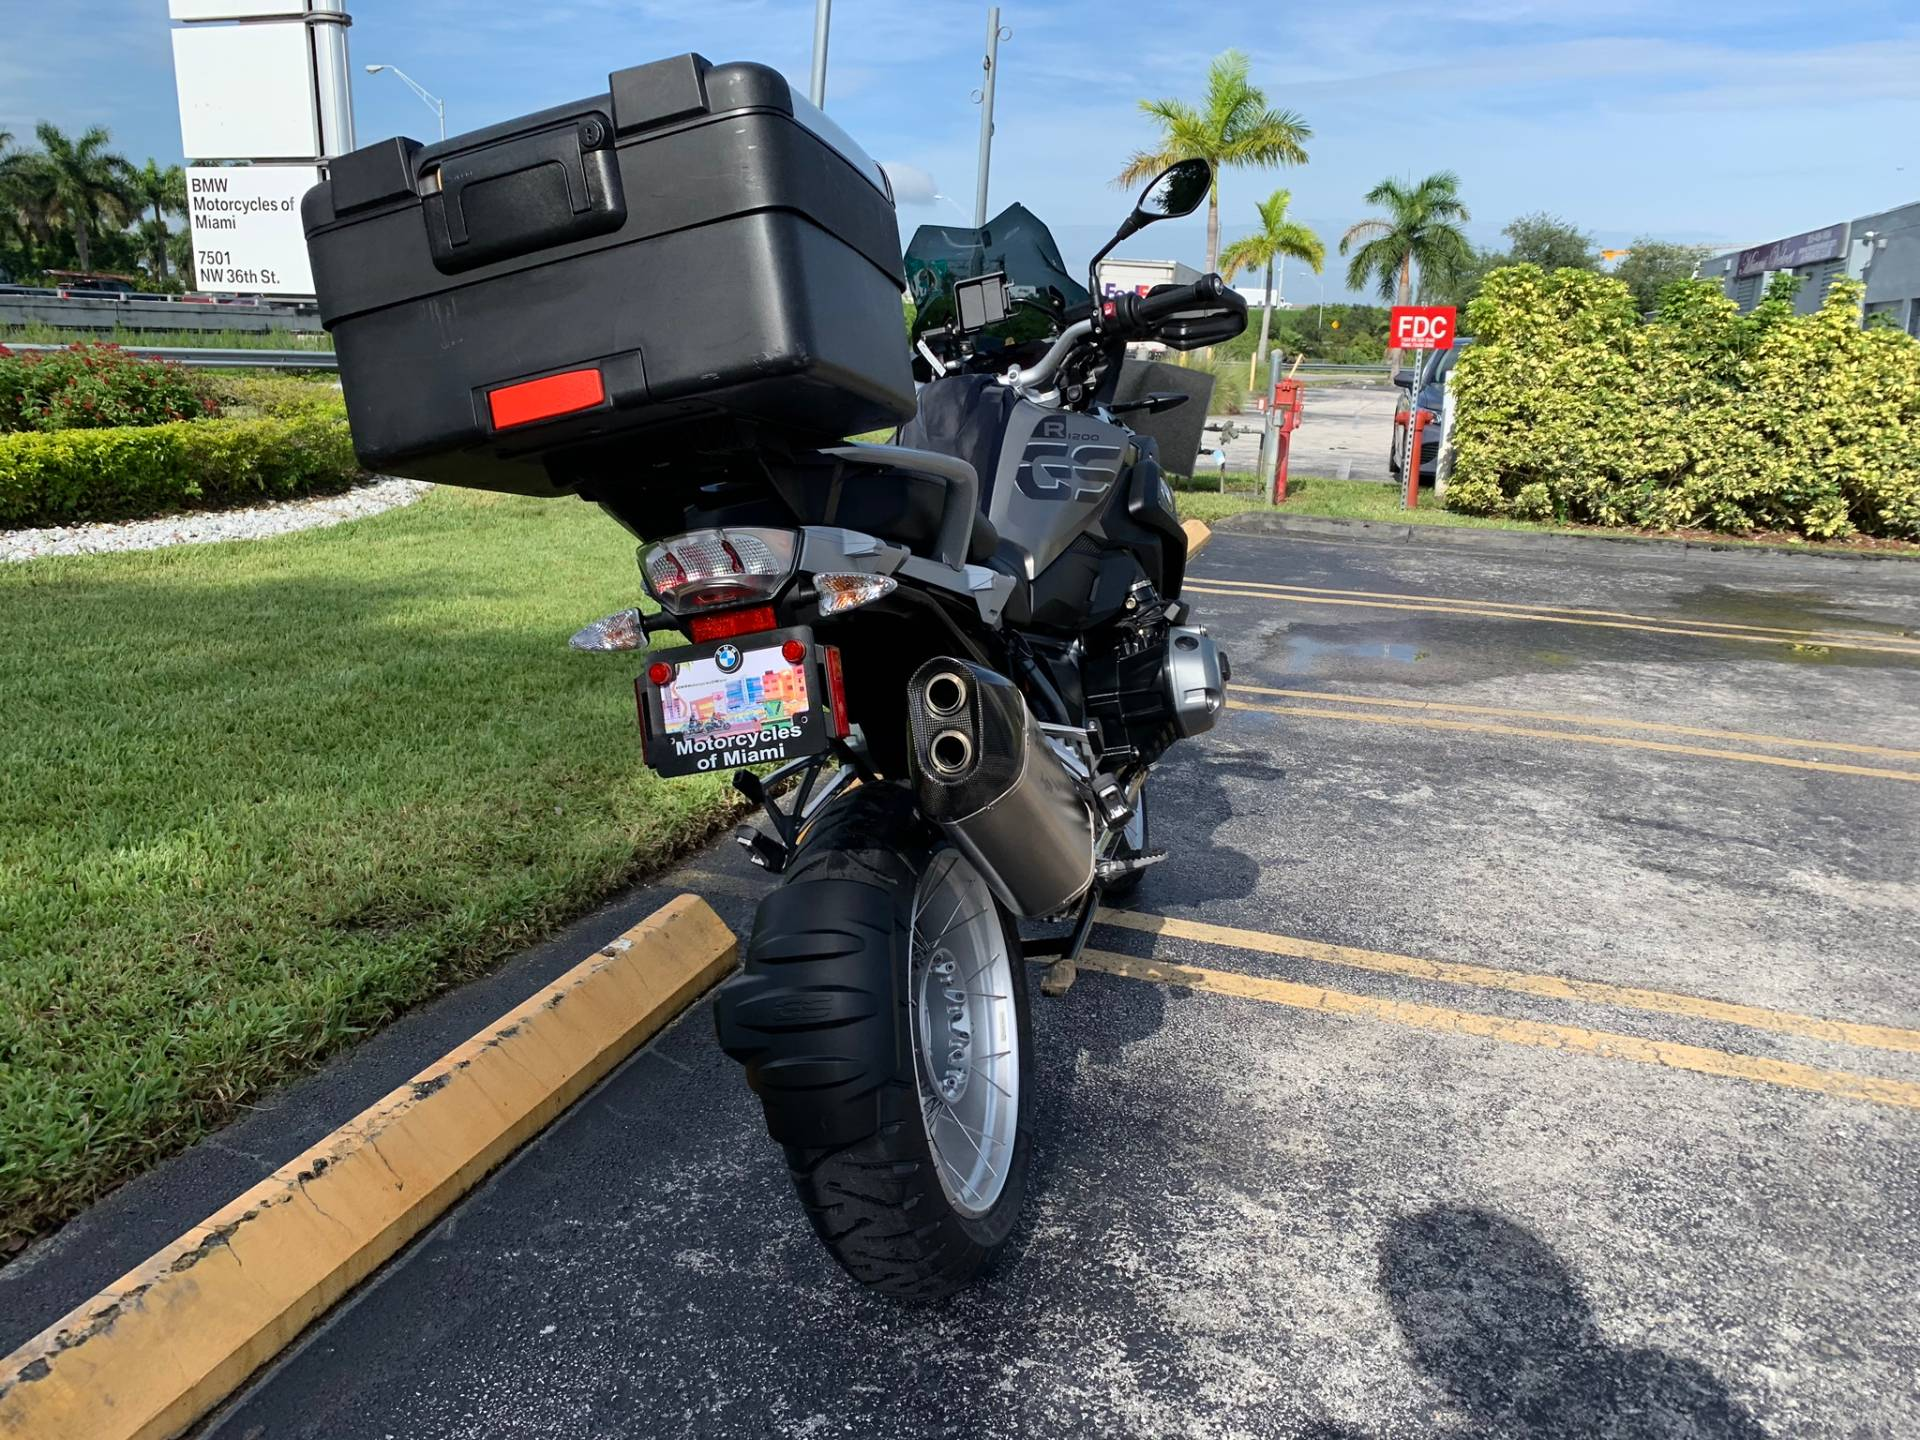 Used 2018 BMW R 1200 GS for sale, BMW R 1200GS for sale, BMW Motorcycle R1200GS, used BMW 1200GS, DUAL, GSA, BMW. BMW Motorcycles of Miami, Motorcycles of Miami, Motorcycles Miami, New Motorcycles, Used Motorcycles, pre-owned. #BMWMotorcyclesOfMiami #MotorcyclesOfMiami. - Photo 15